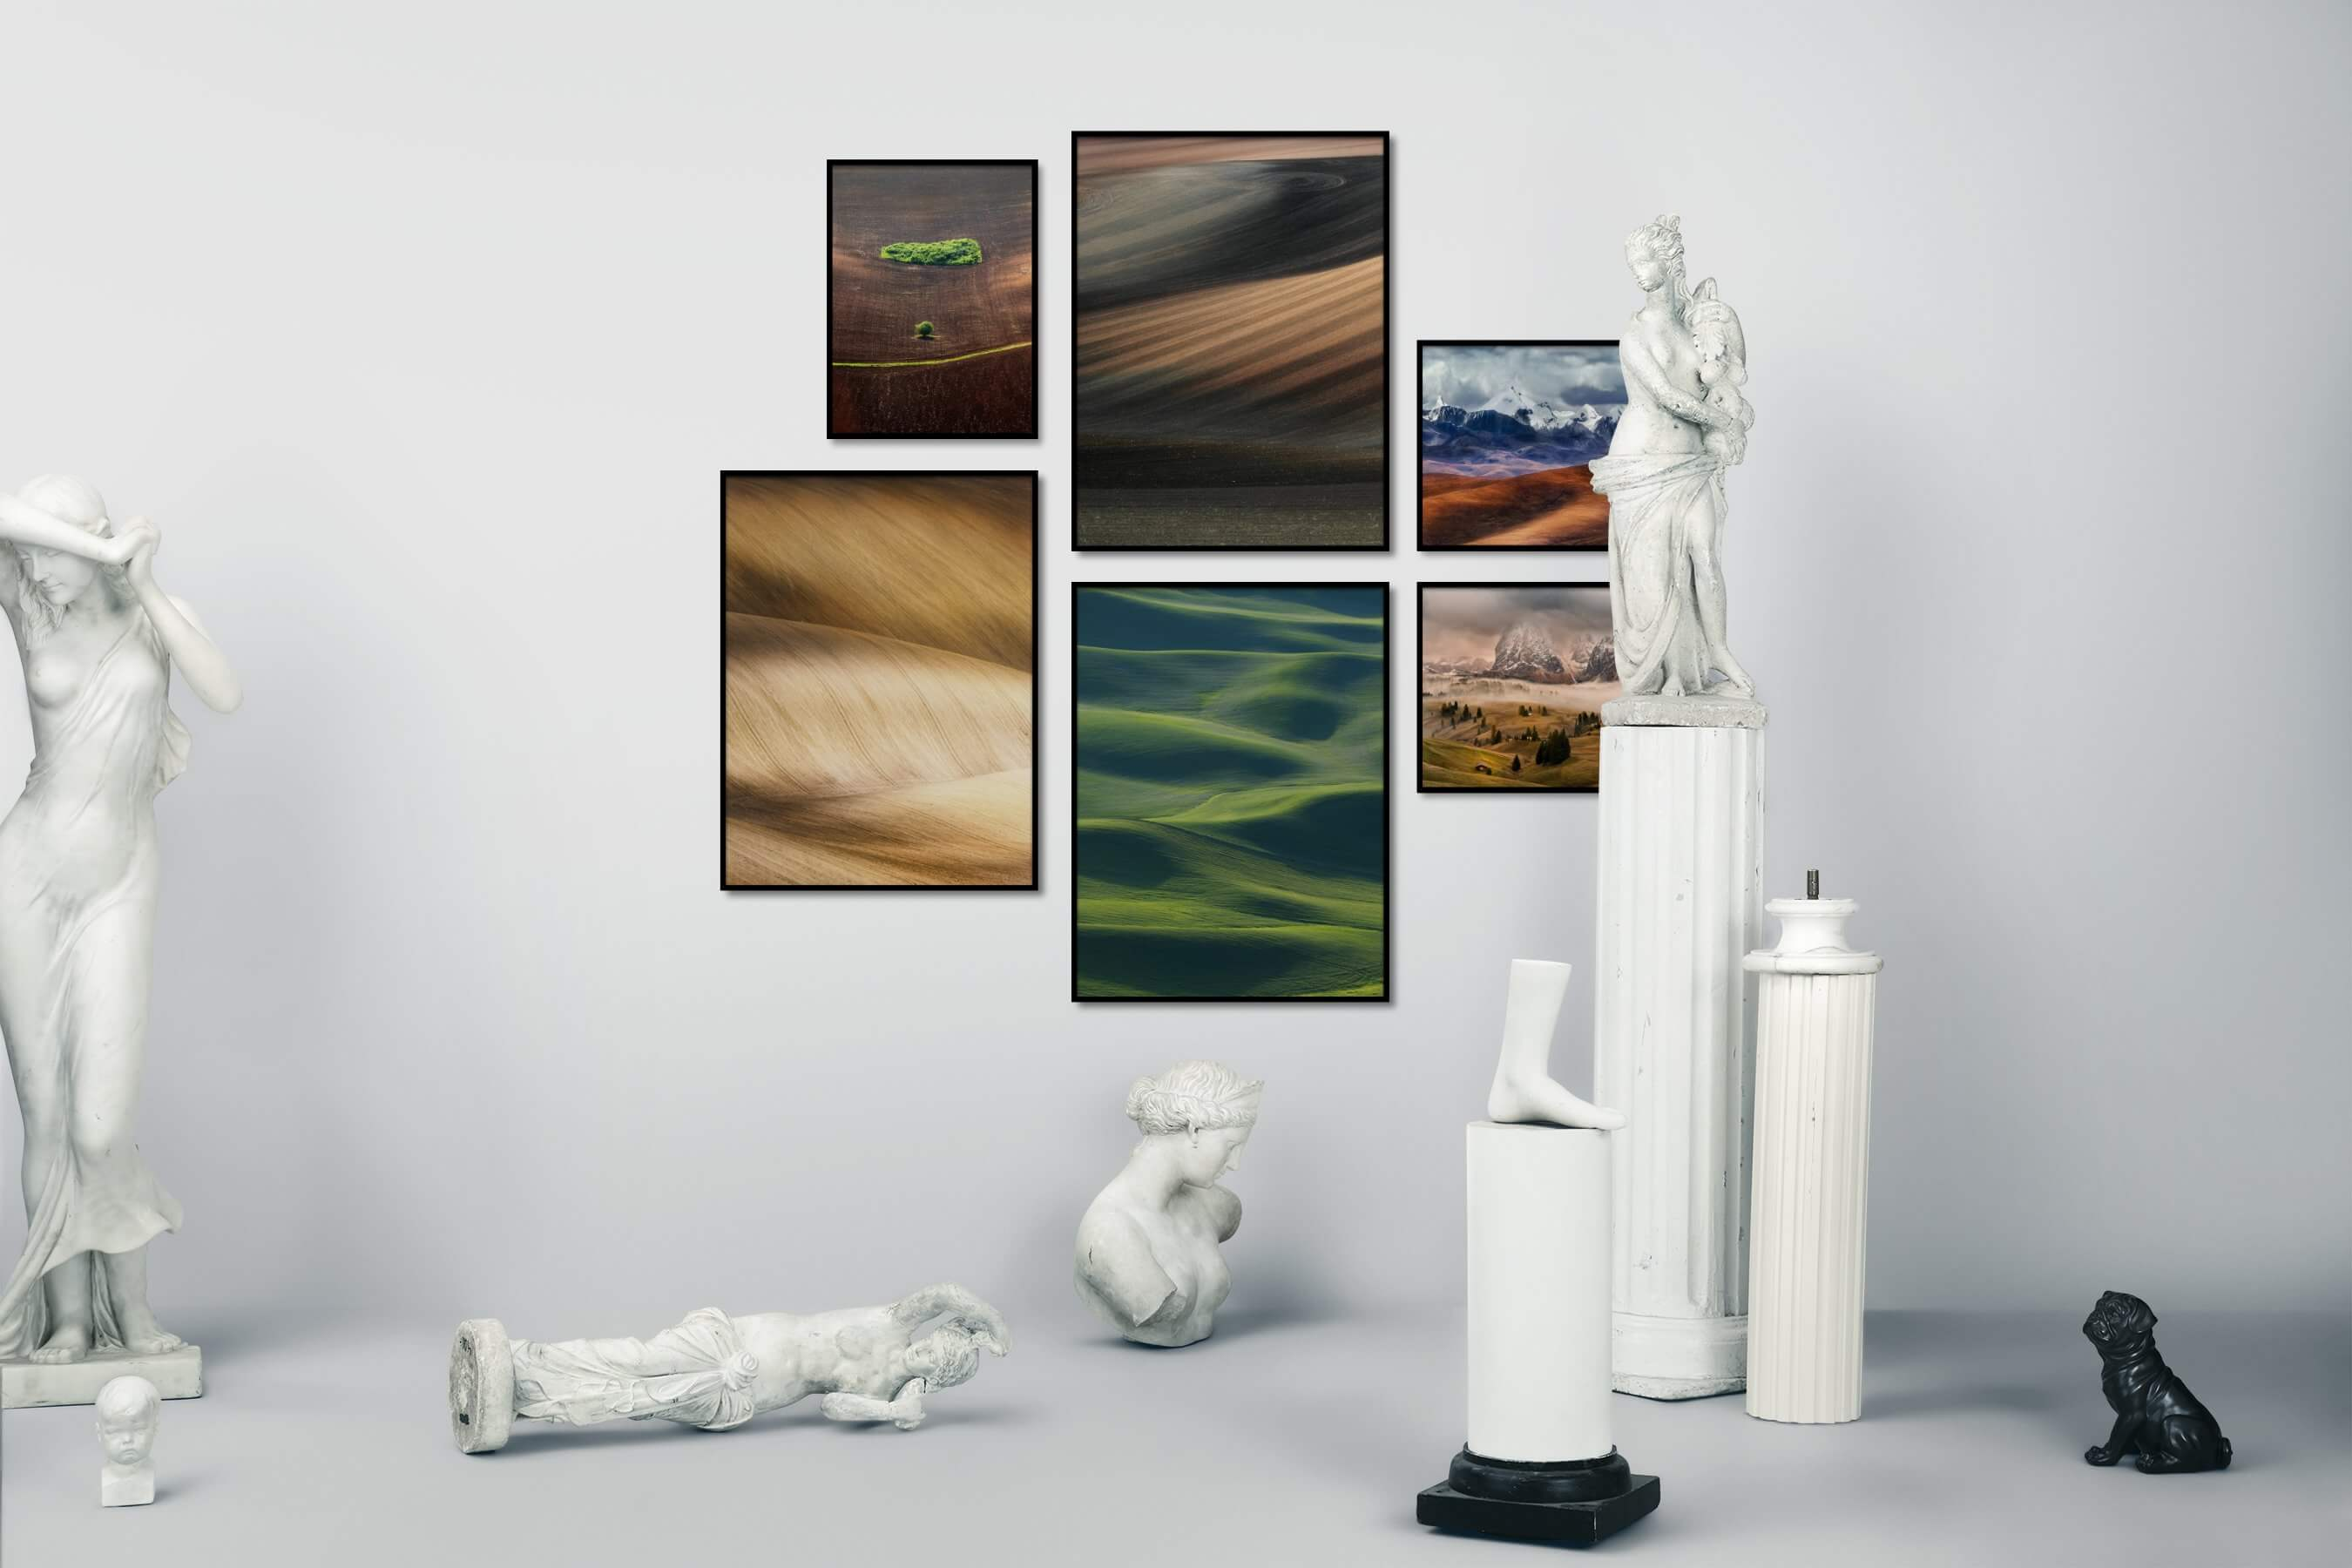 Gallery wall idea with six framed pictures arranged on a wall depicting For the Minimalist, Country Life, For the Moderate, and Nature